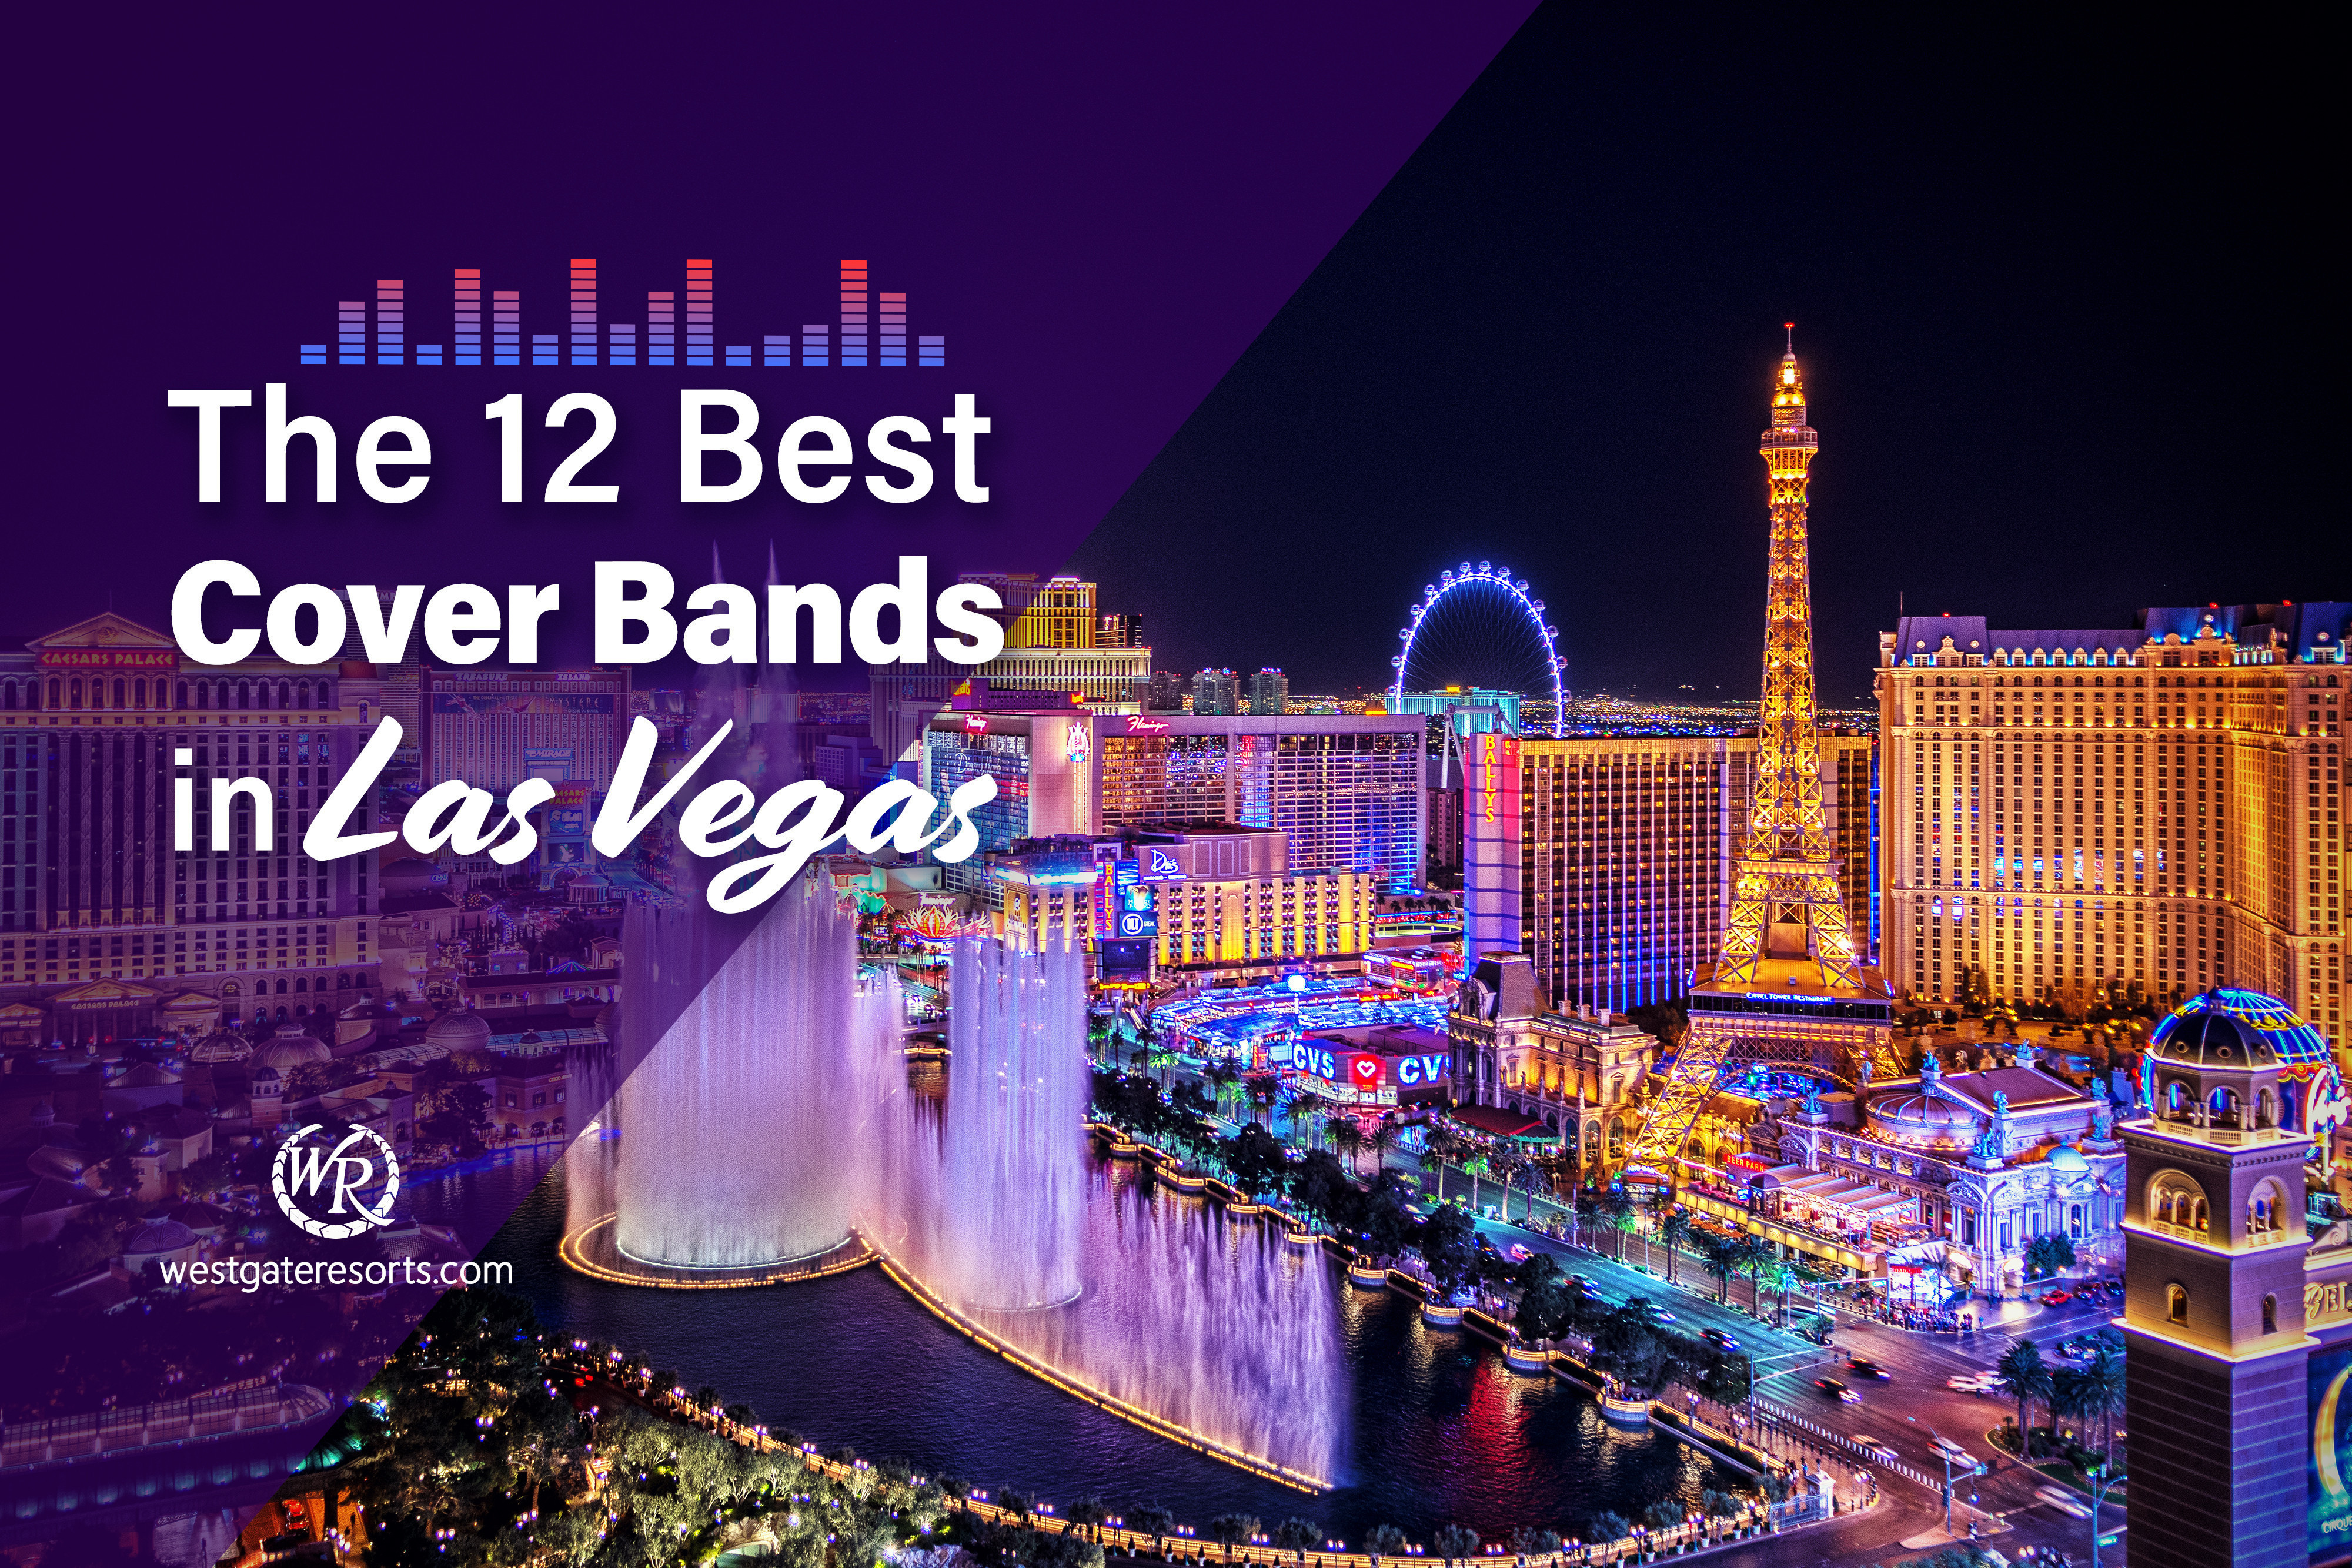 The 12 Best Cover Bands in Las Vegas (2021)